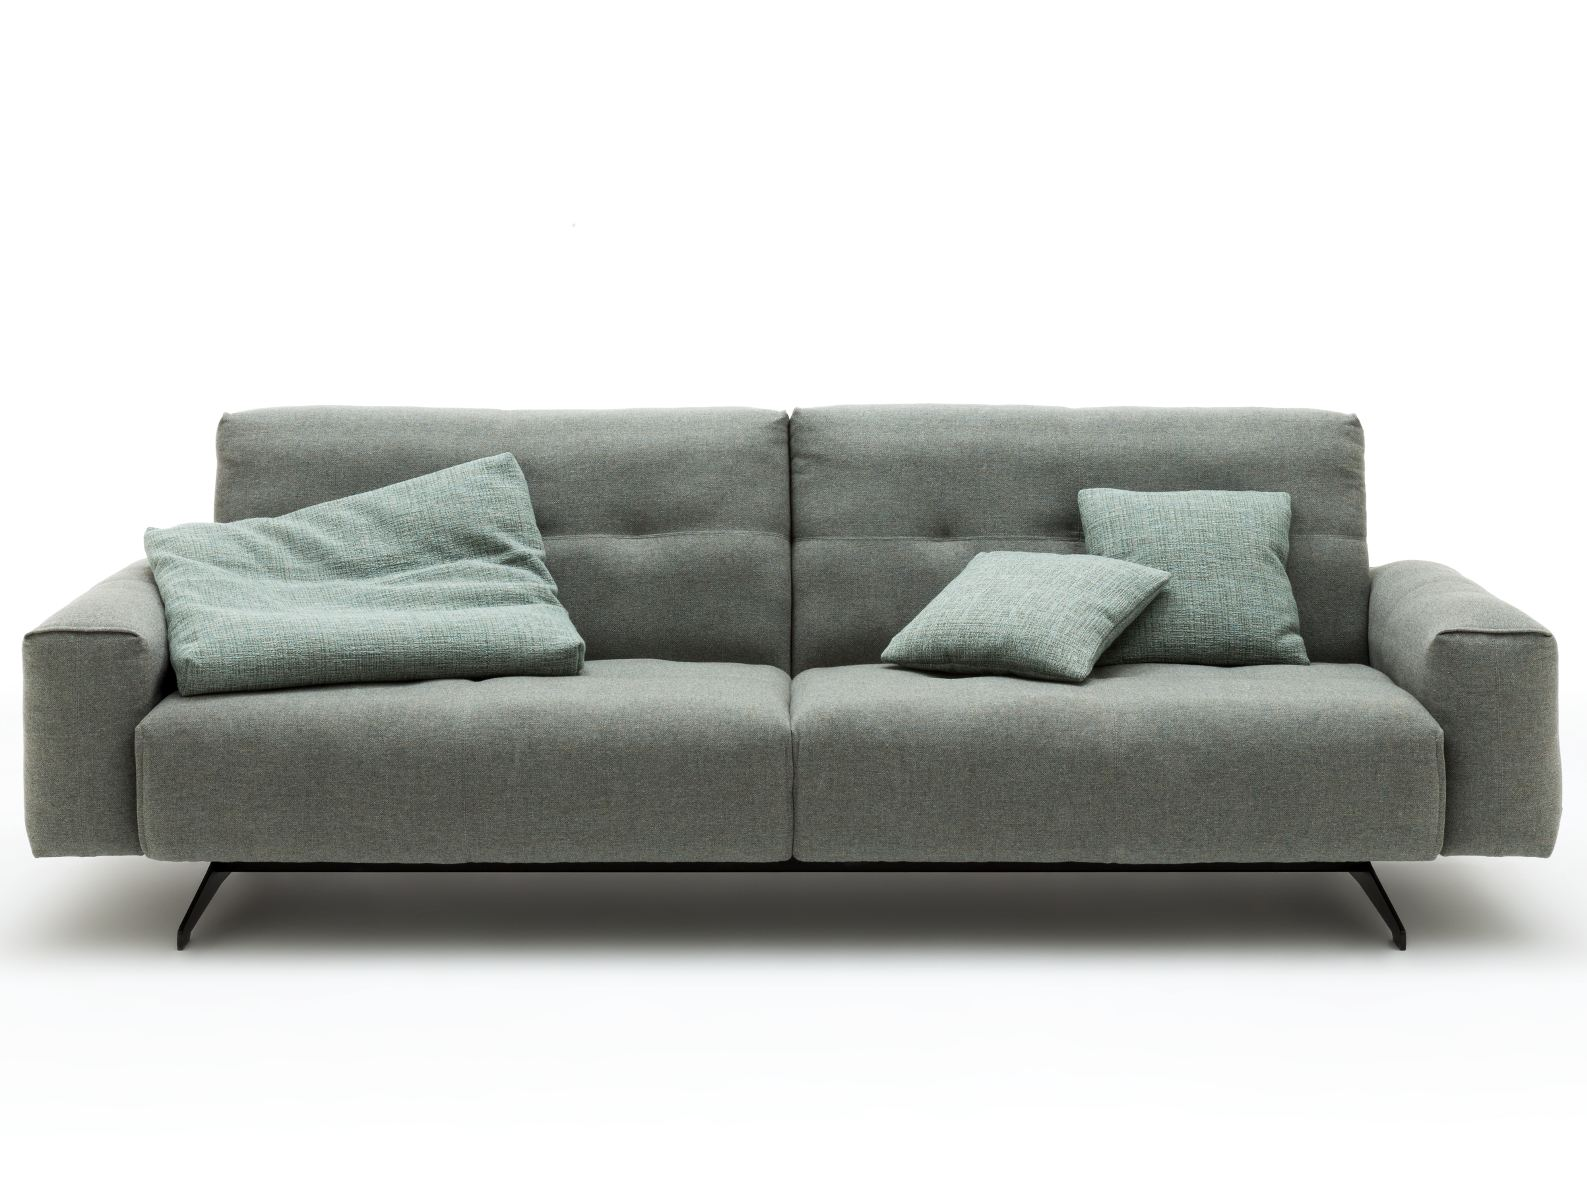 Rolf Benz Sofa Konfigurator Rolf Benz 50 Fabric Sofa Rolf Benz 50 Collection By Rolf